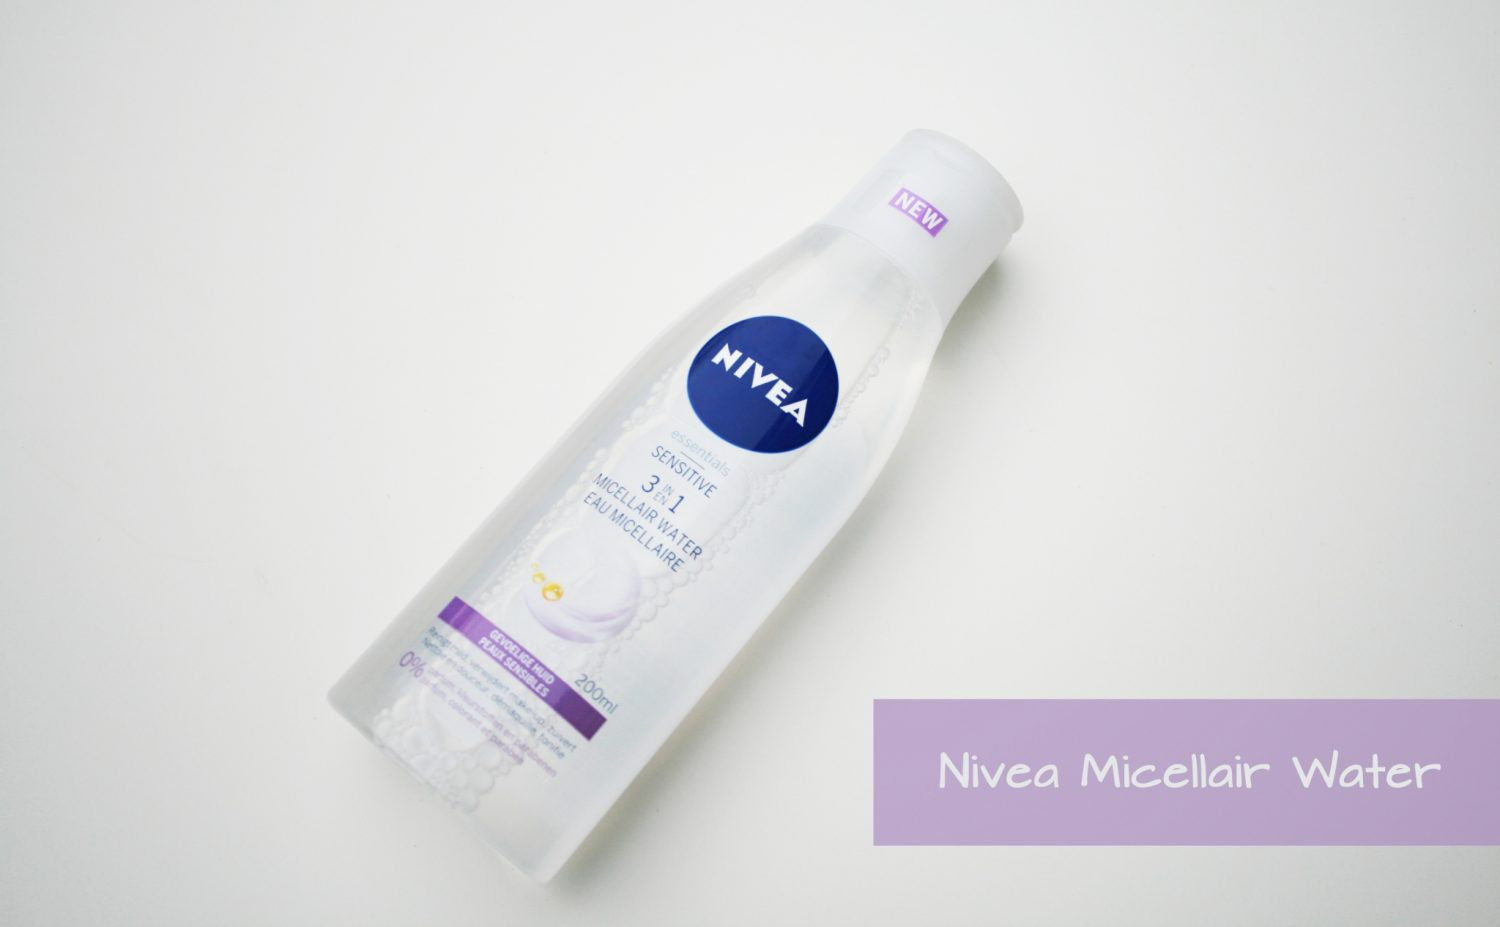 Review: Nivea Sensitive 3 in 1 Micellair Water